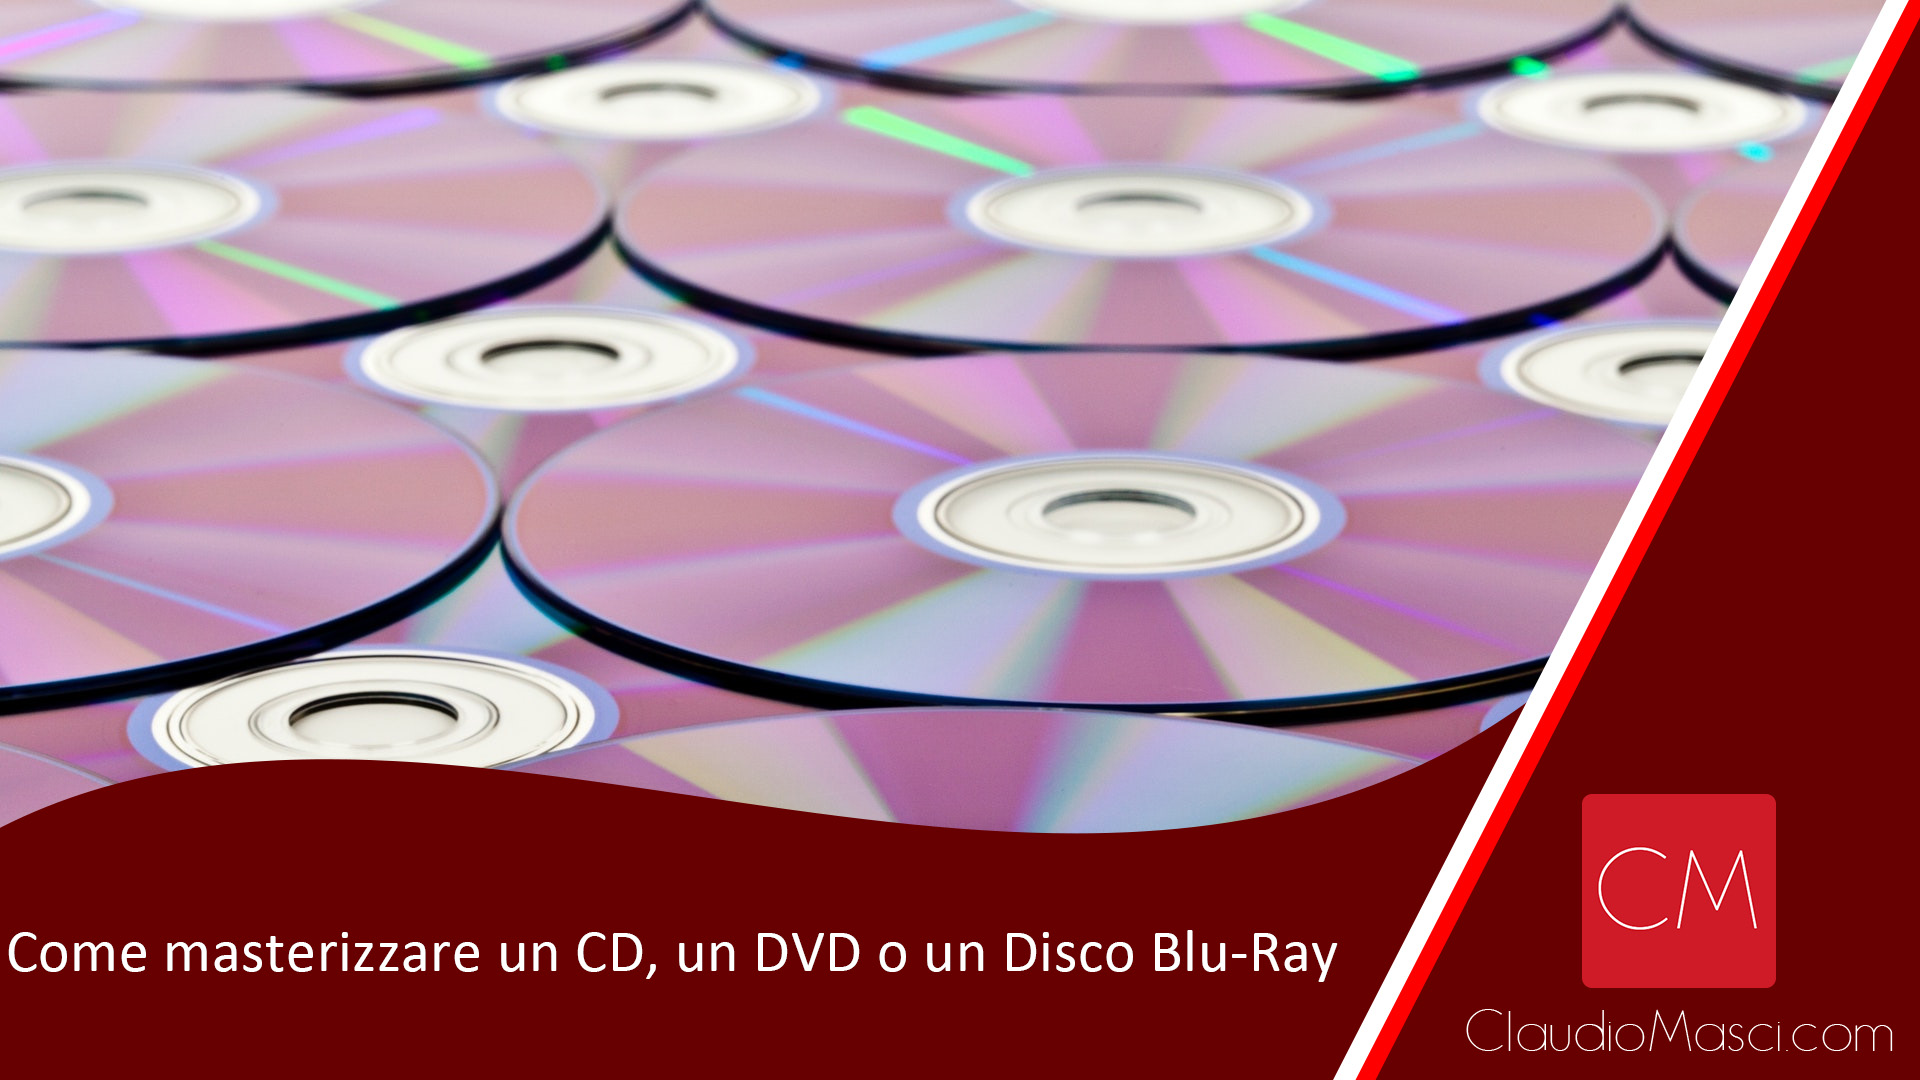 Come masterizzare un CD, un DVD o un Disco Blu-Ray